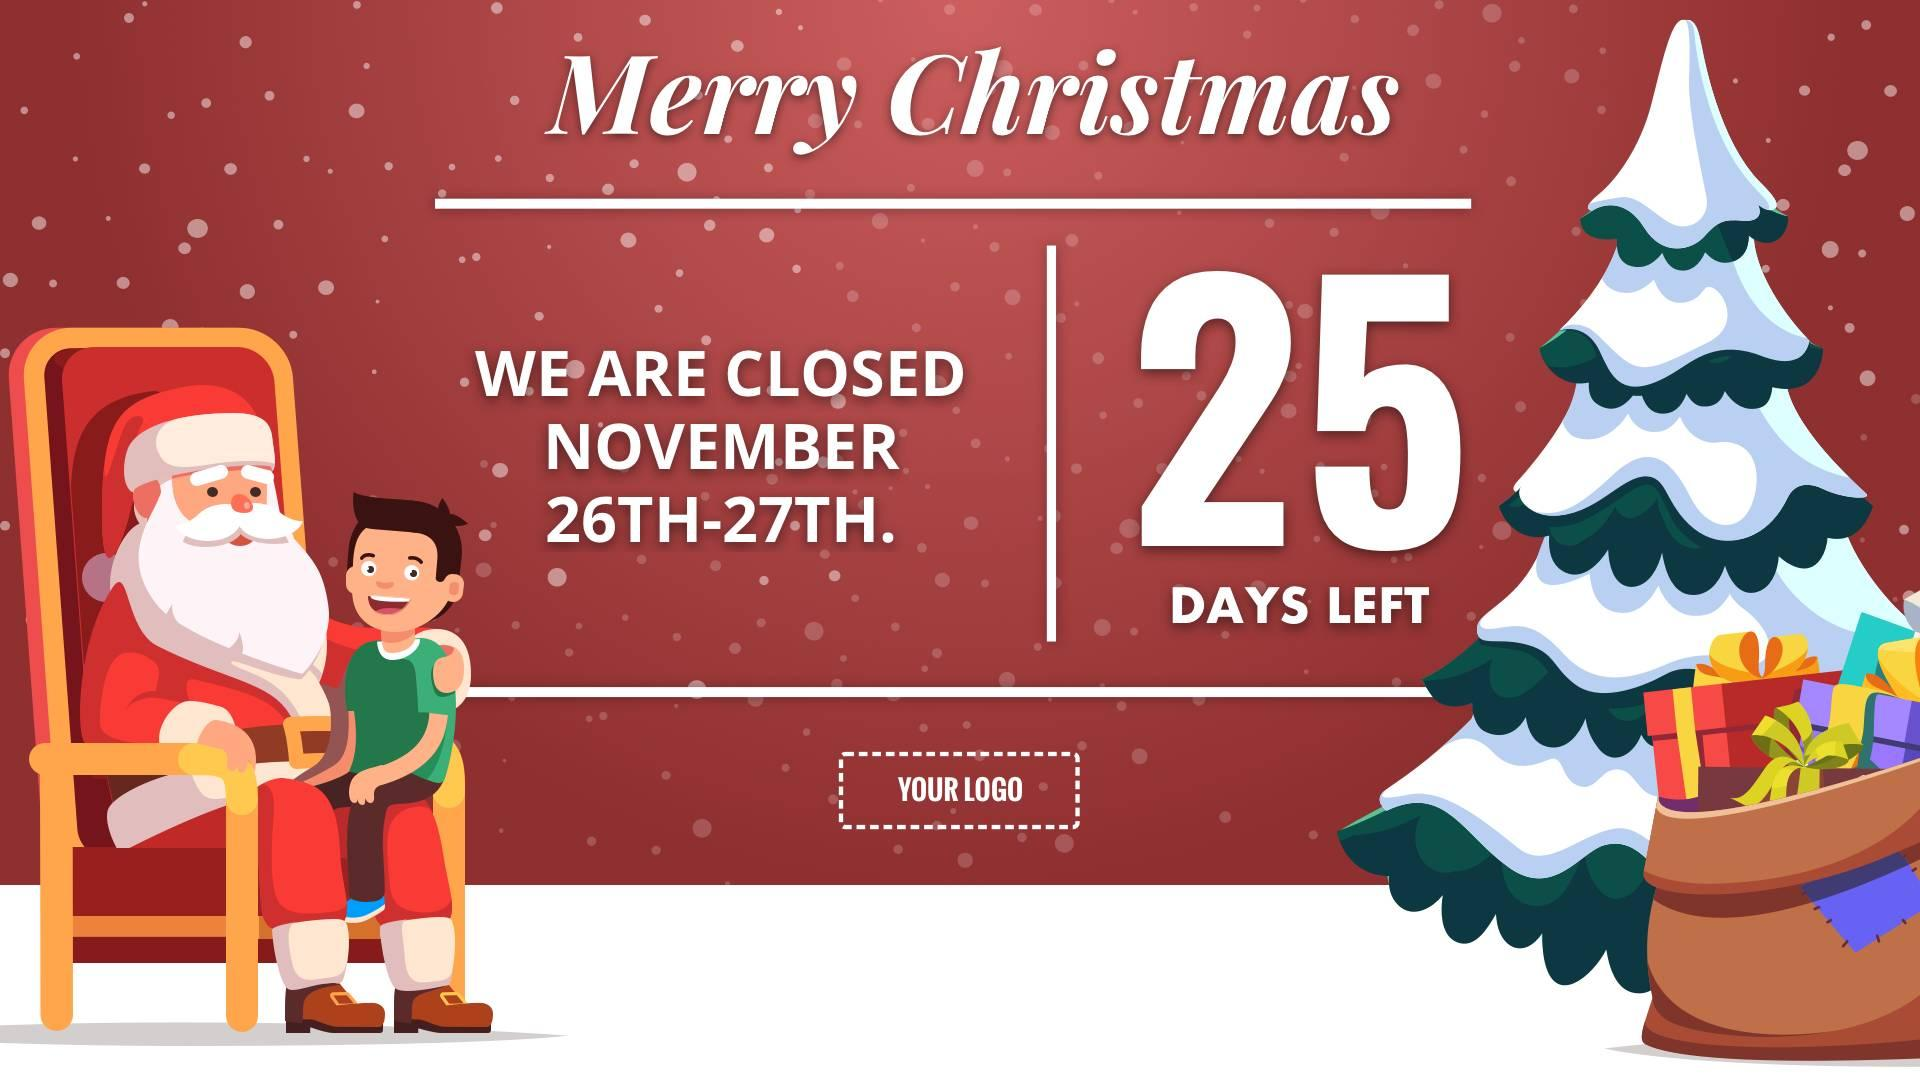 Holiday Christmas Countdown Digital Signage Template